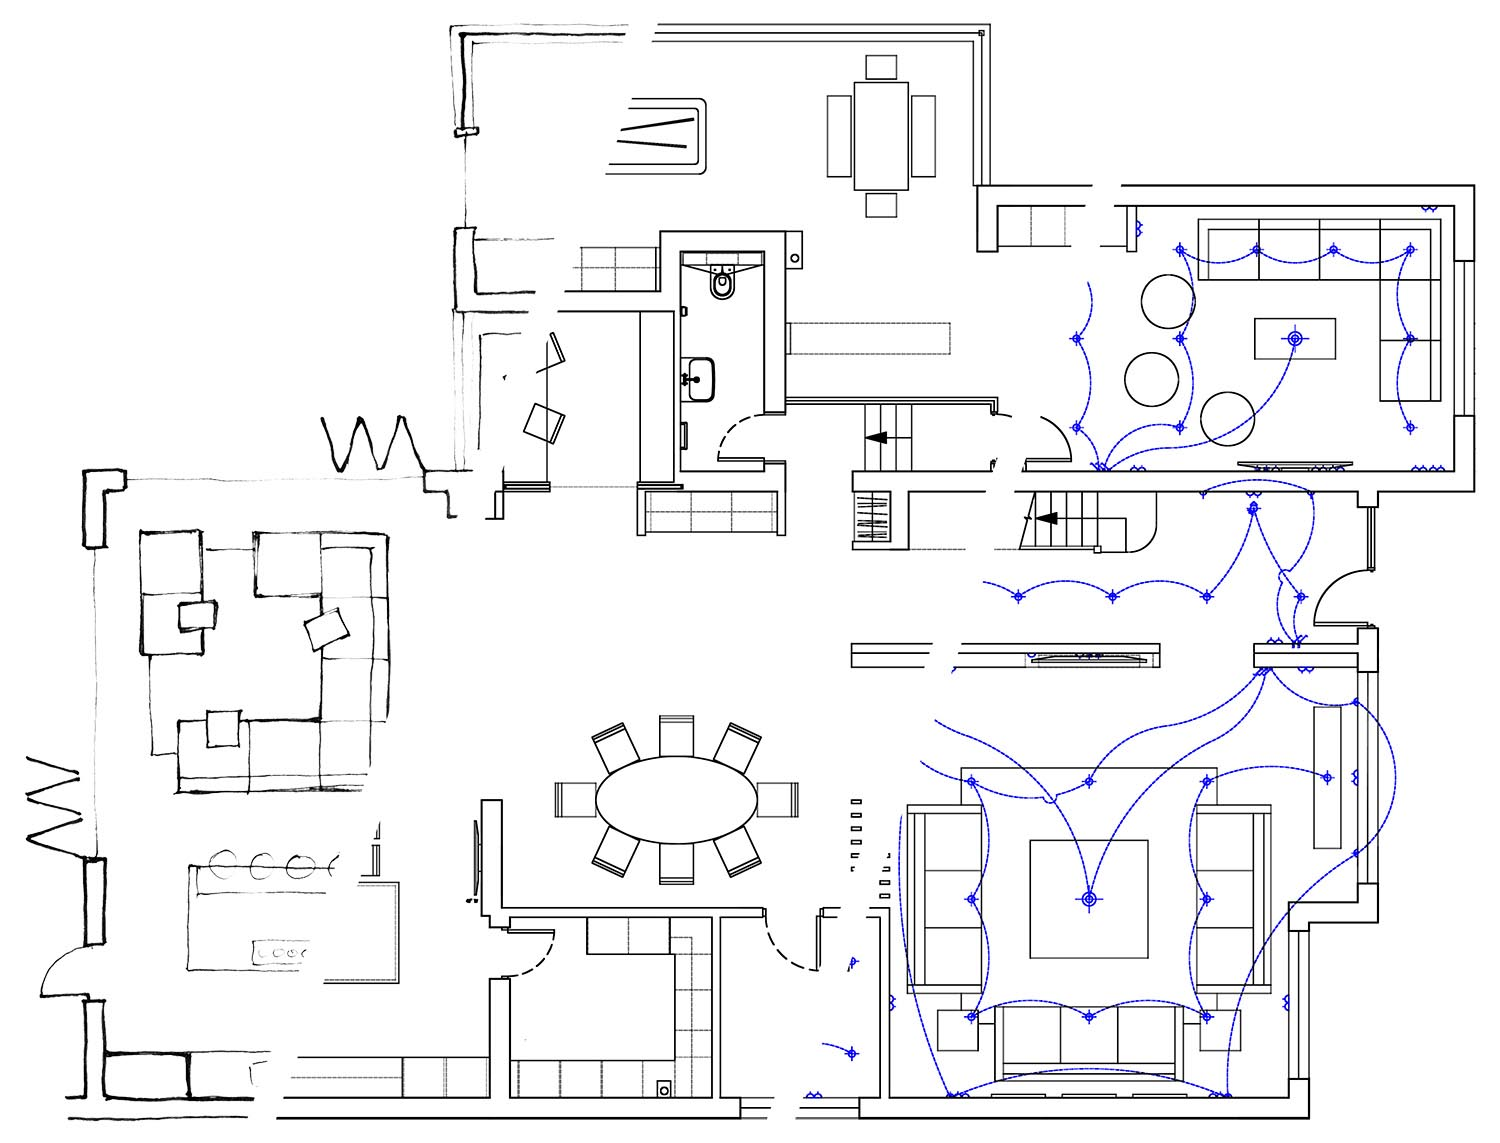 interior sketch cad plan lighting design